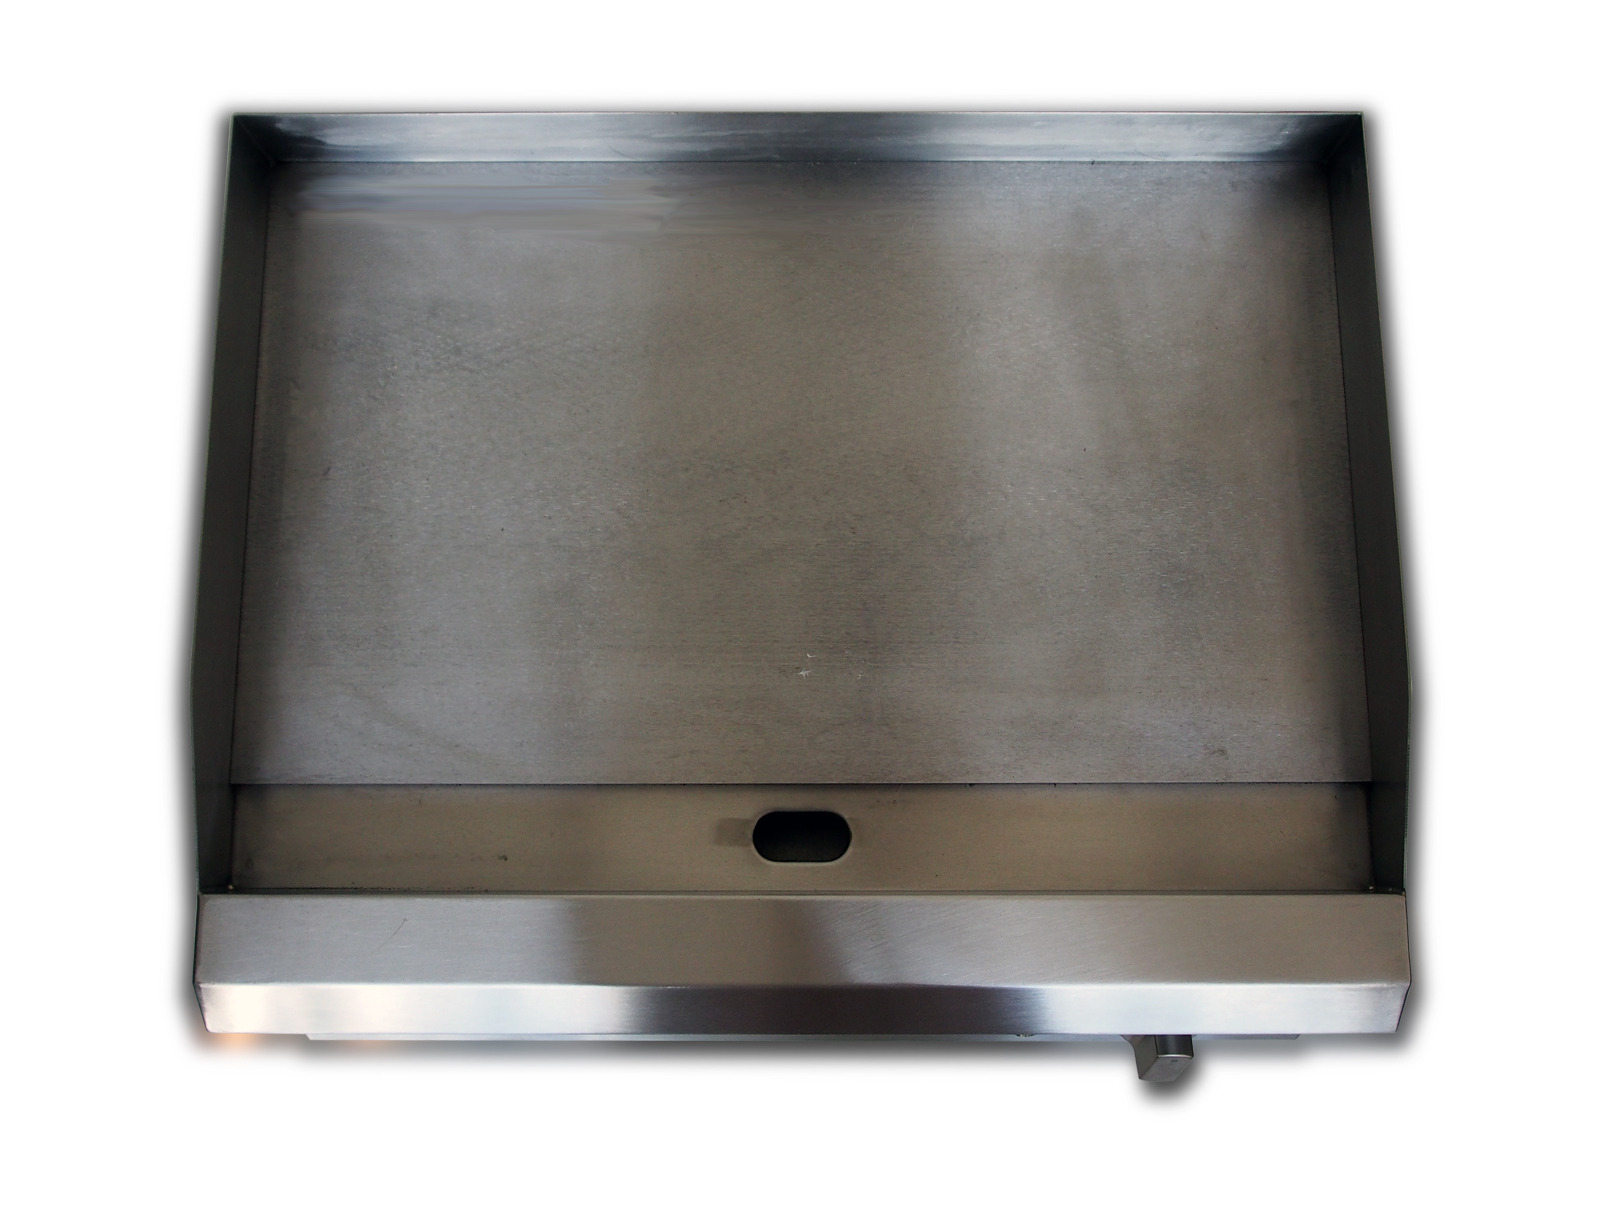 New electric griddle grill hot plate stainless steel bbq